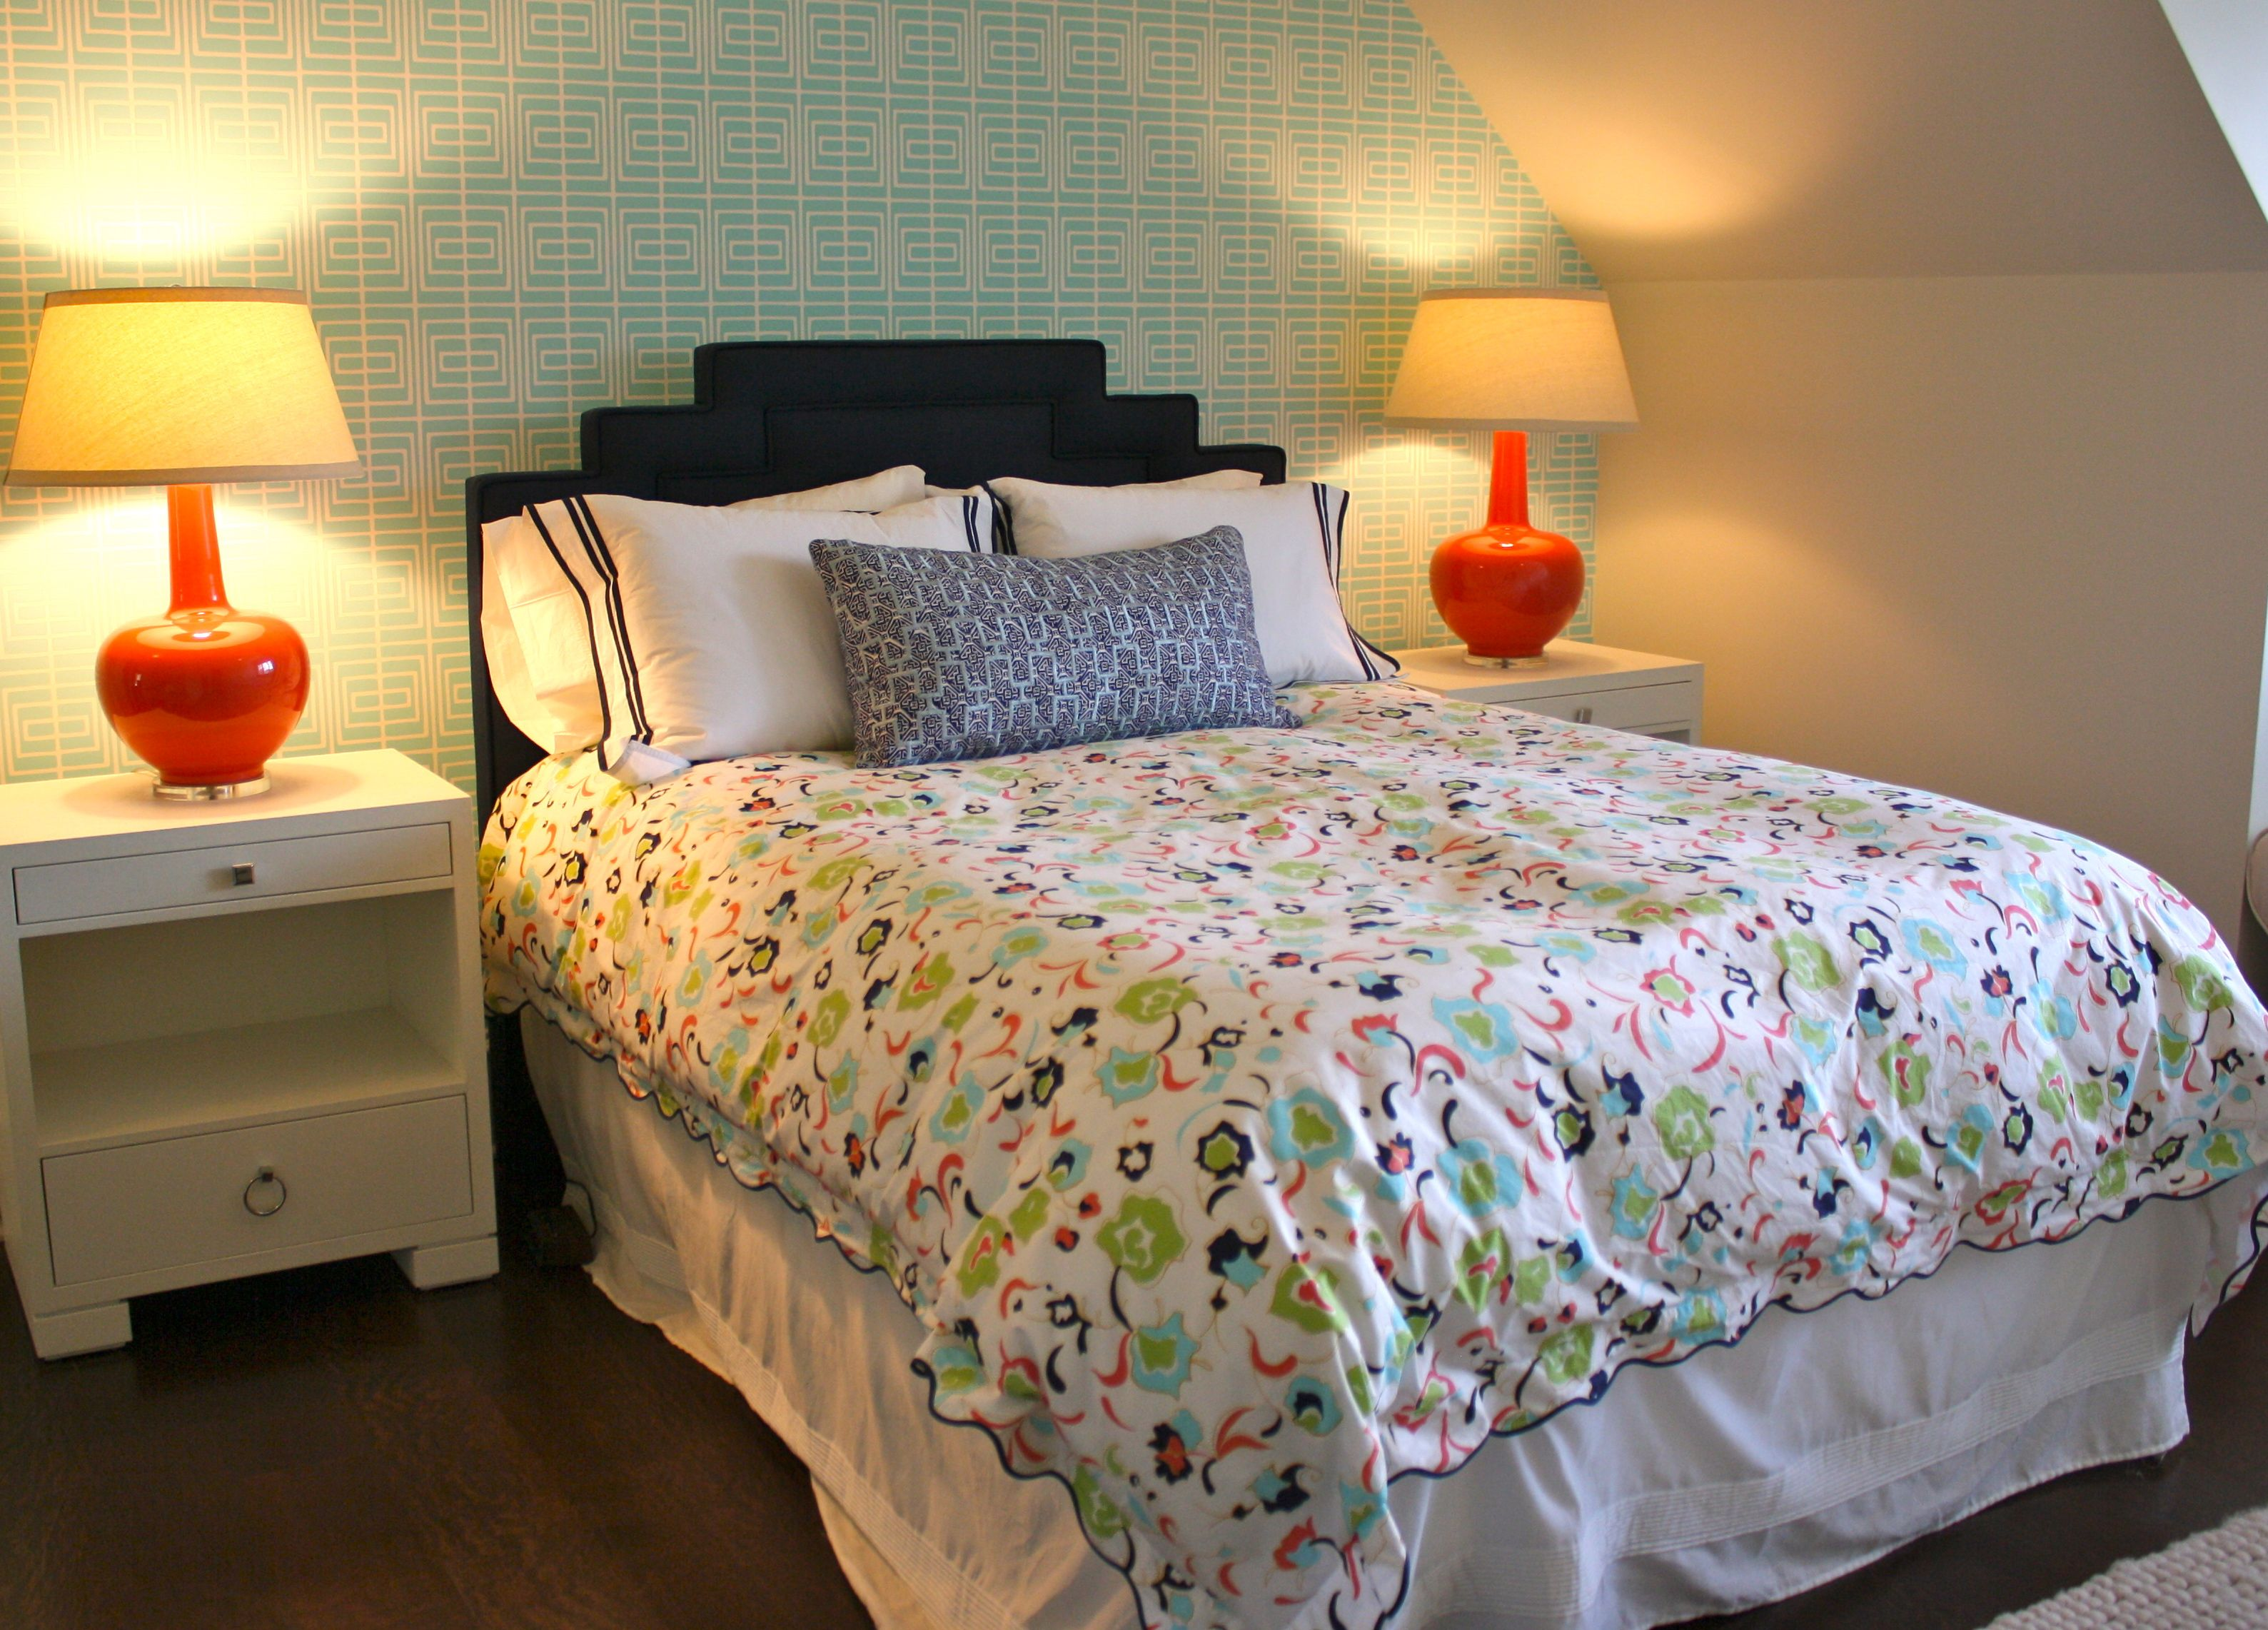 Design serendipity interiors guest bedroom turquoise for Coral and turquoise bedroom ideas